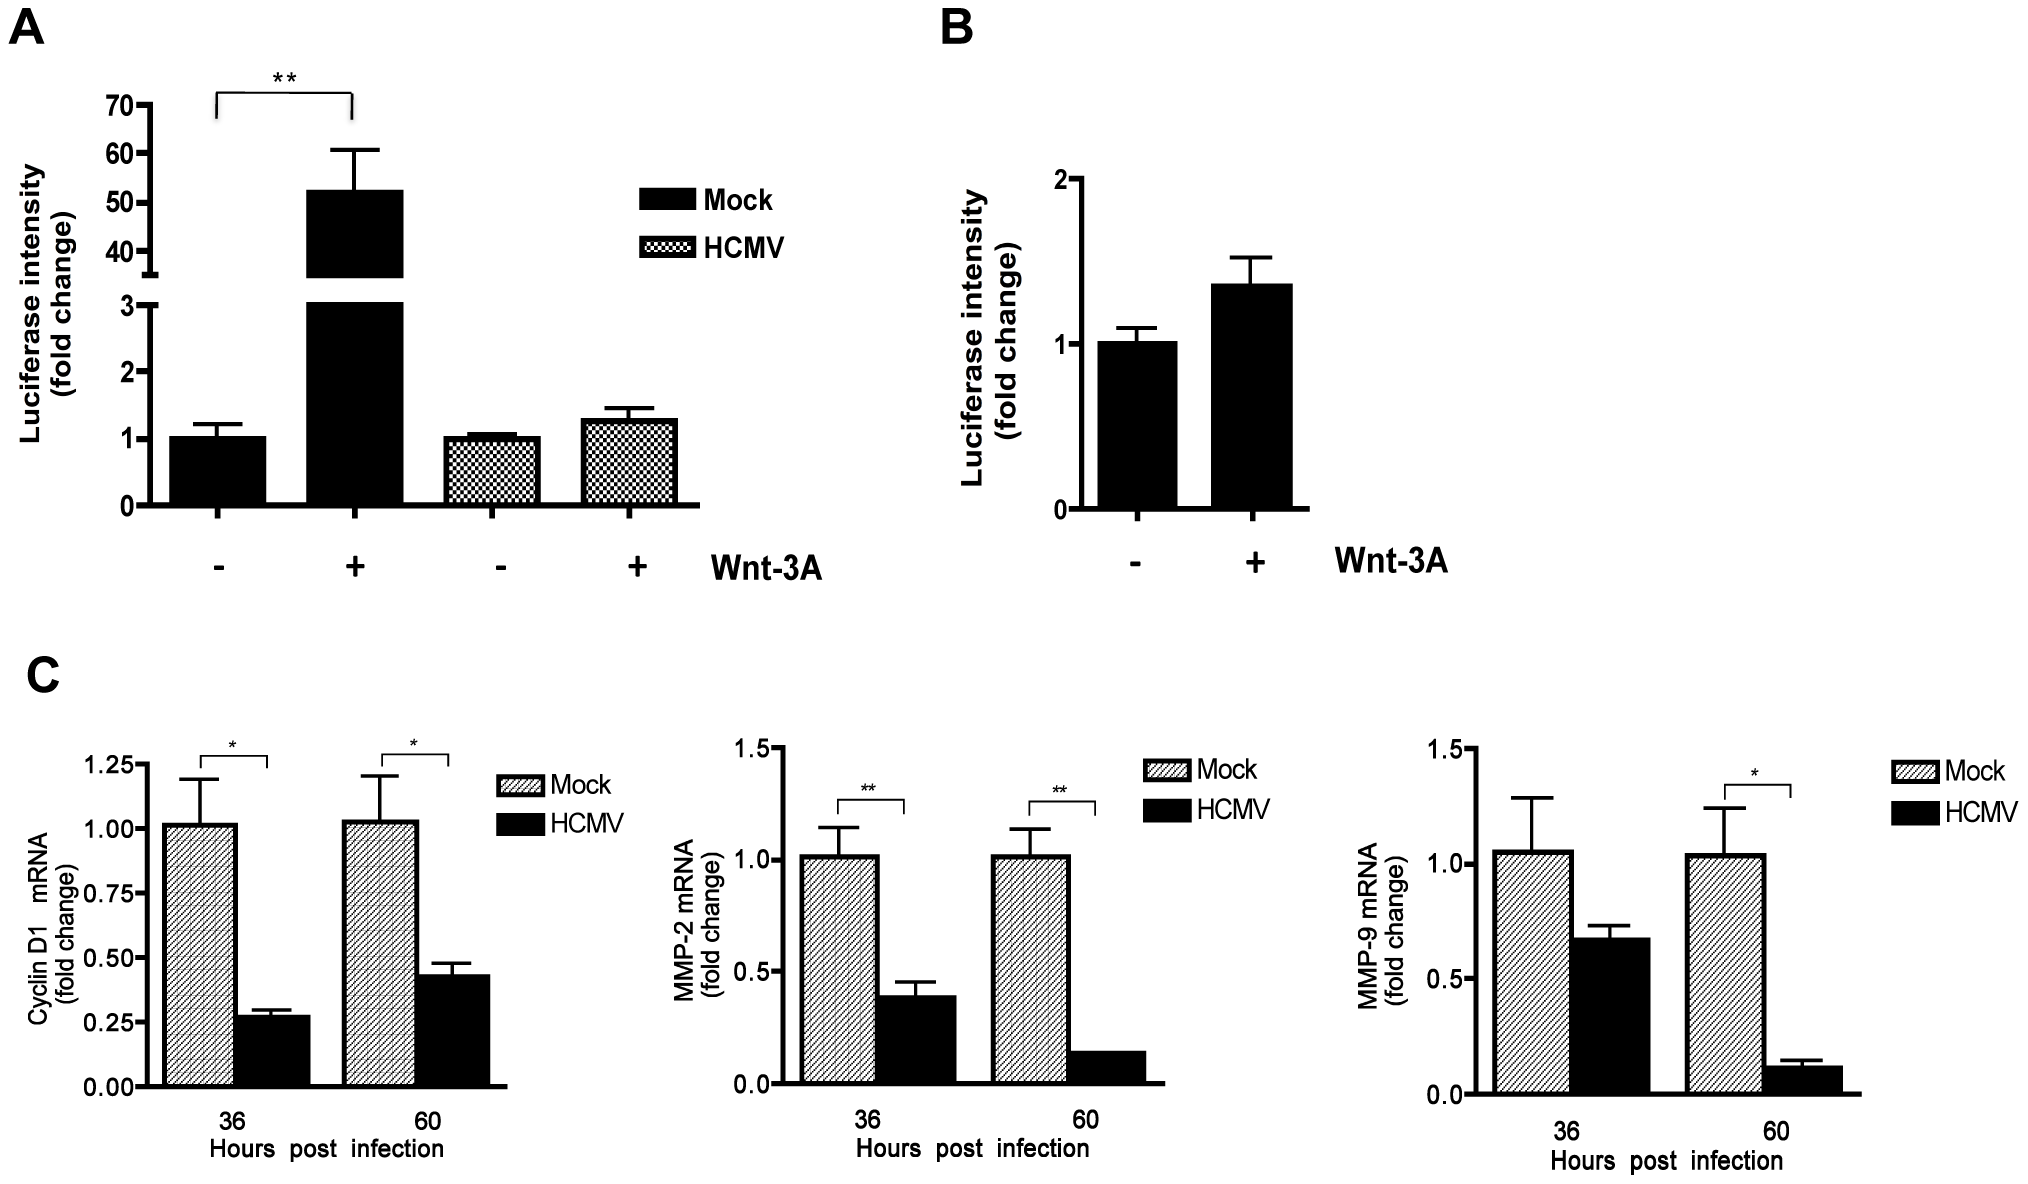 HCMV infection inhibits Wnt/β-catenin transcriptional activity in EVTs in response to Wnt stimulation.